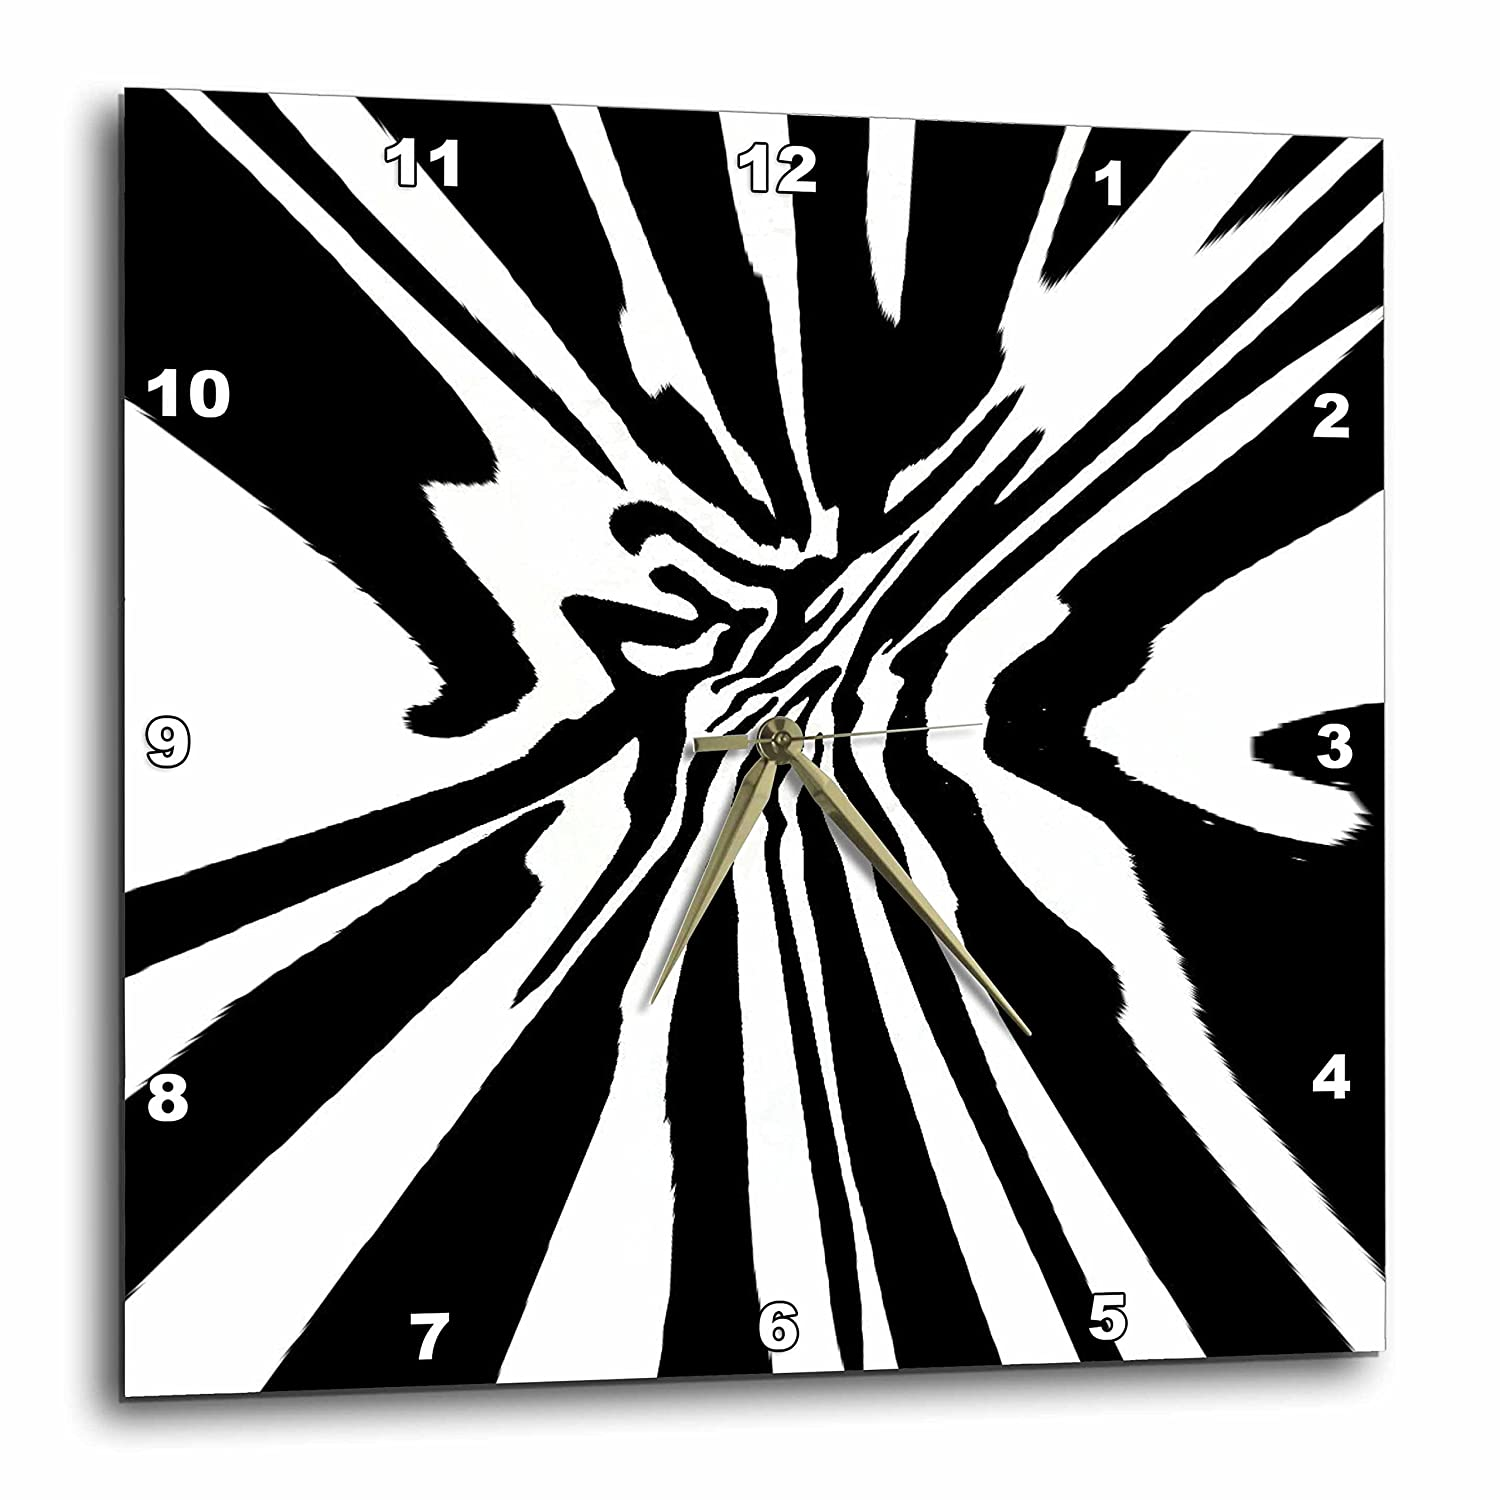 dpp/_25734/_1 Black and White Abstract Art 10x10 Wall Clock 3dRose Patricia Sanders Creations